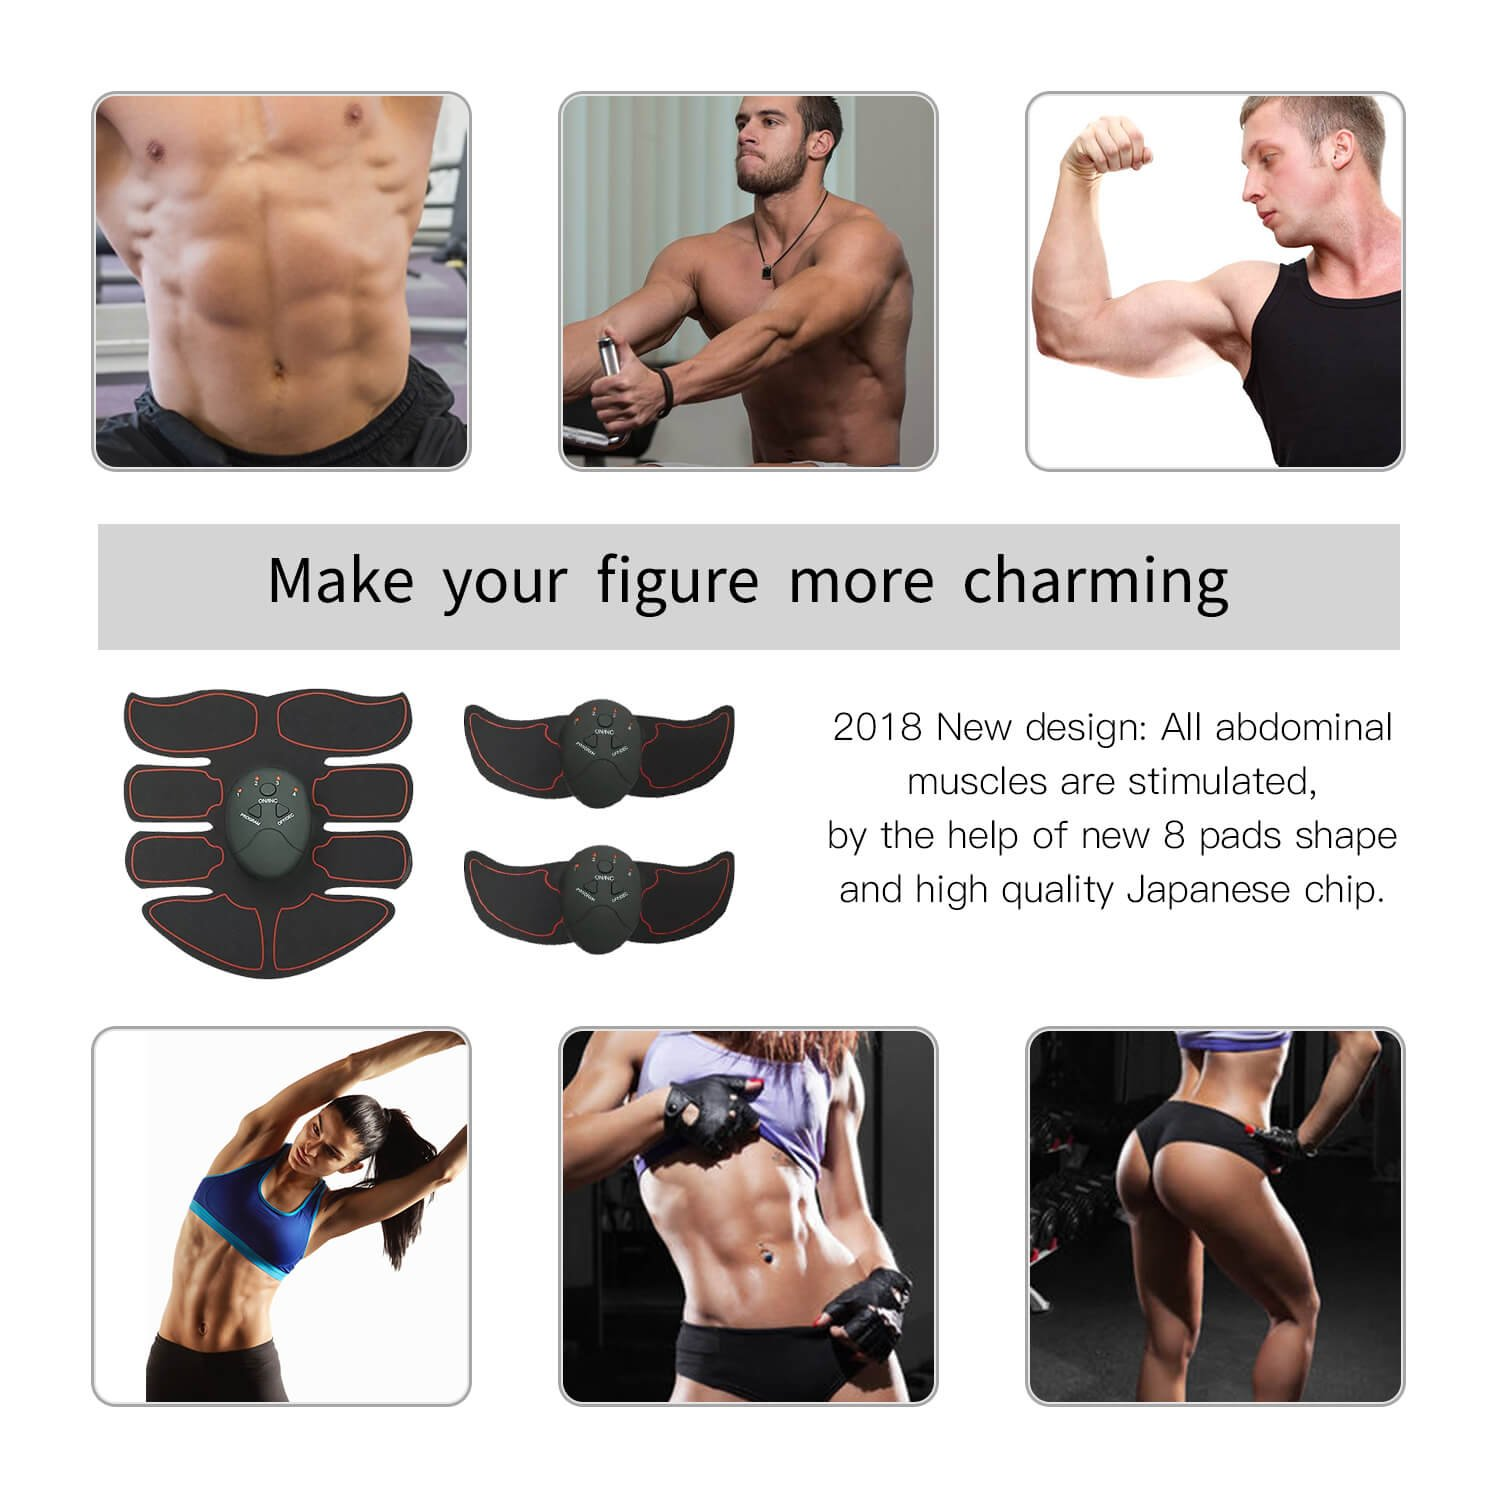 Fitness Equipment & Gear Abdominal Exercisers Responsible 2018 Trainer Abdominal Toning Muscle Toner Charming Abs Smart Ems Fitness Belt